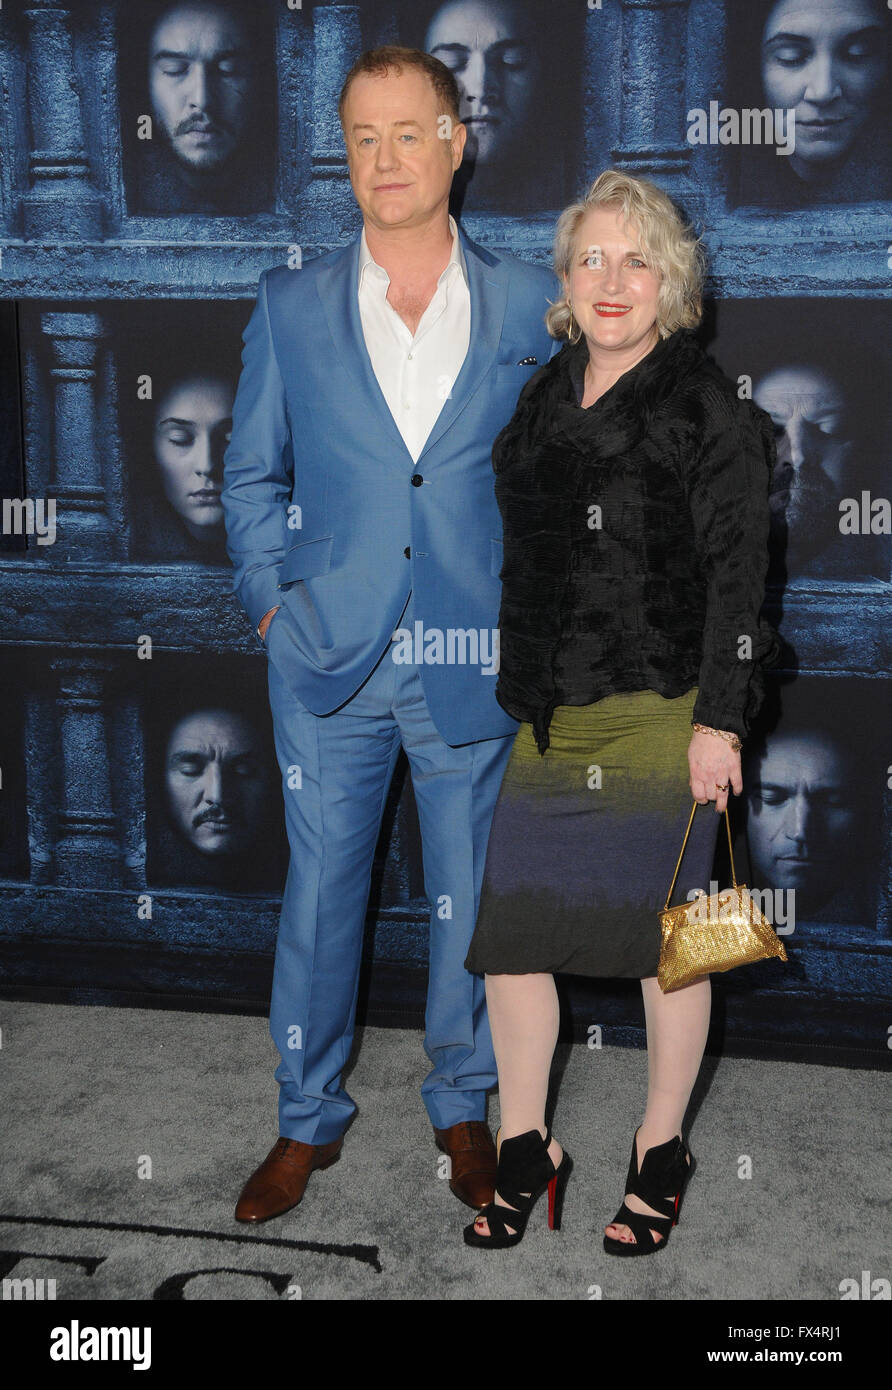 Hollywood, CA, USA. 10th Apr, 2016. 10 April 2016 - Hollywood, California - Owen Teale. Arrivals for the Premiere - Stock Image